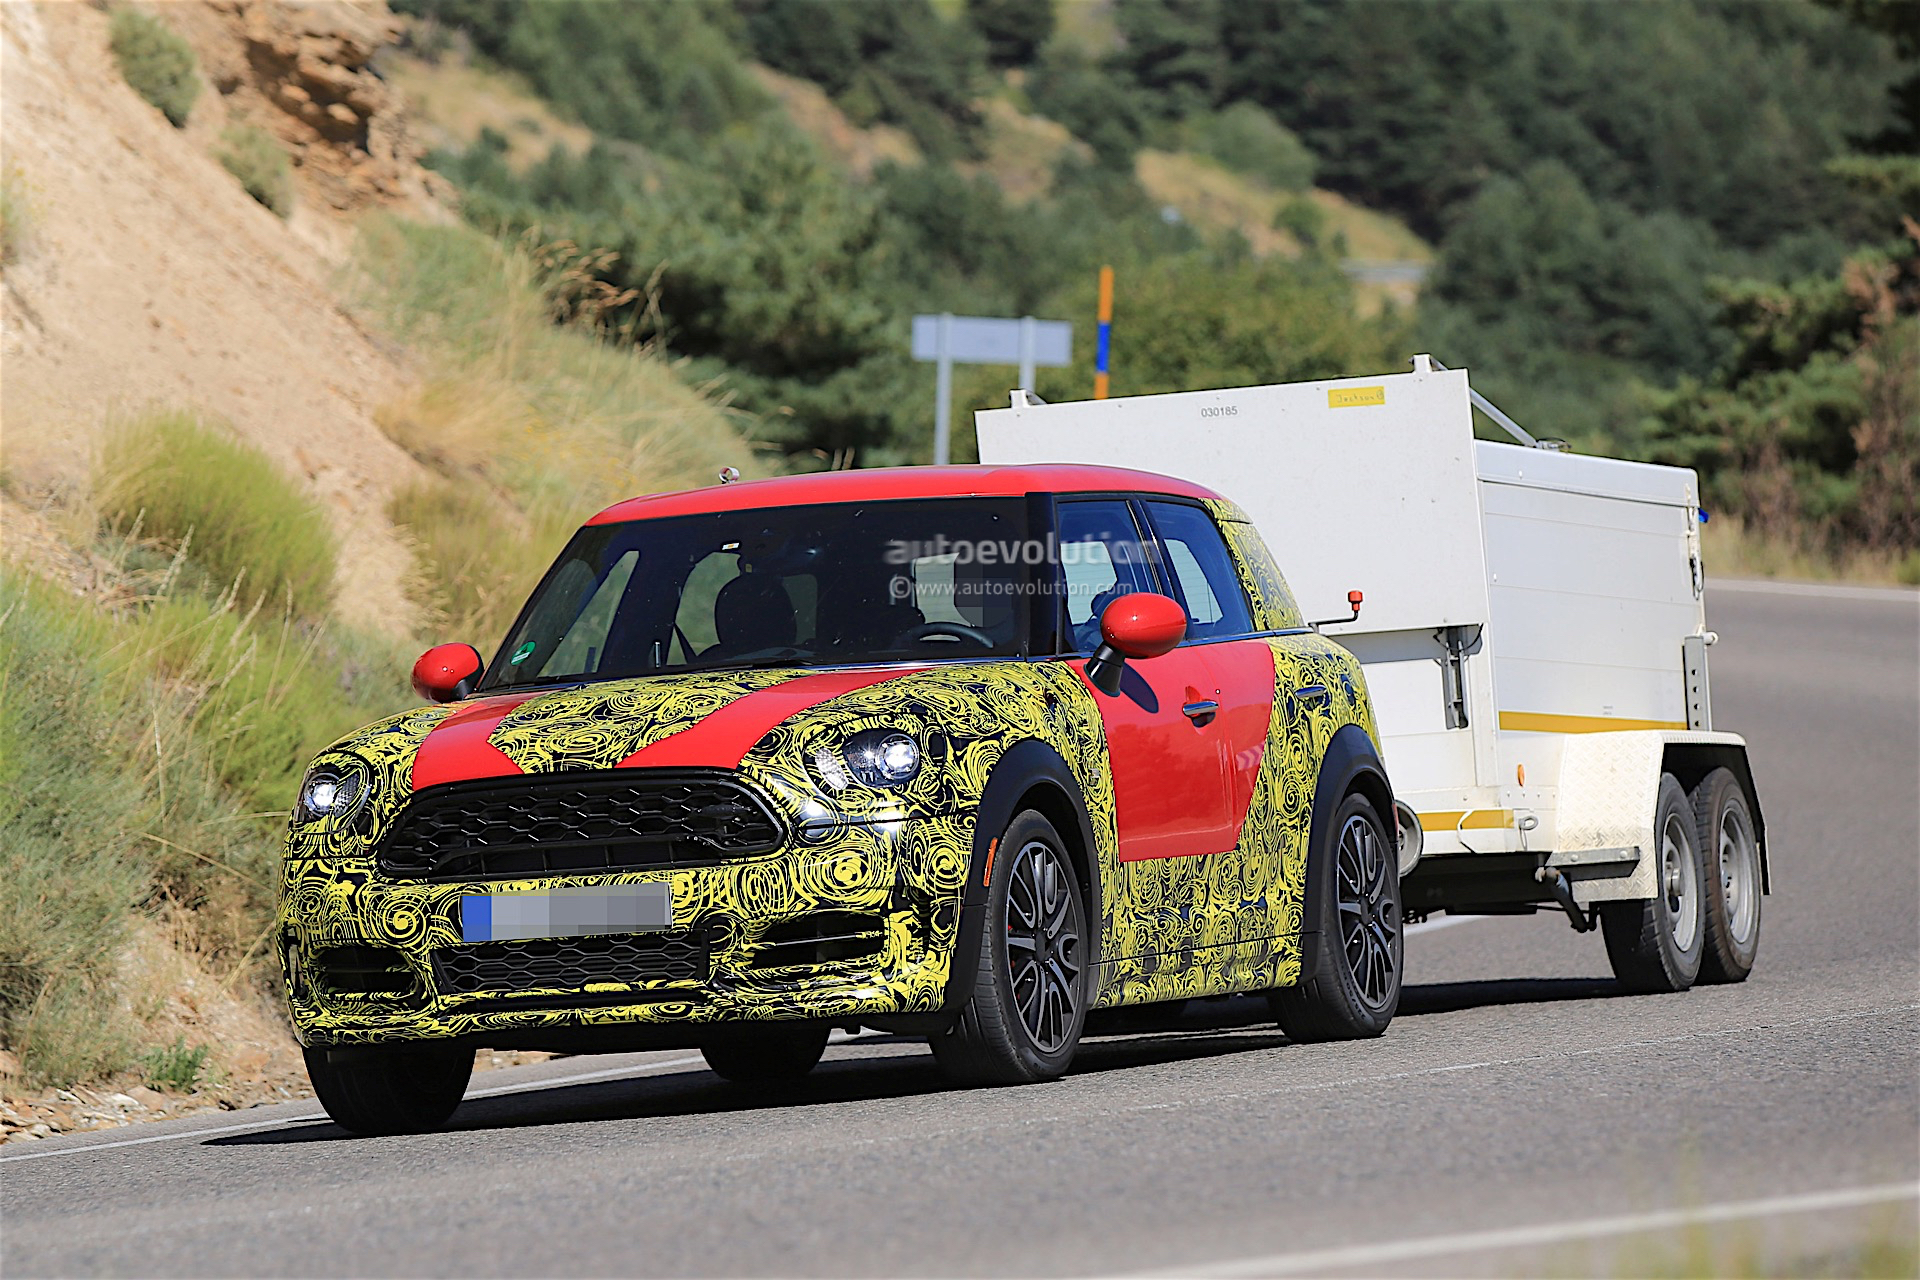 2017 Mini Countryman Spied While Towing Looks Ready For Production